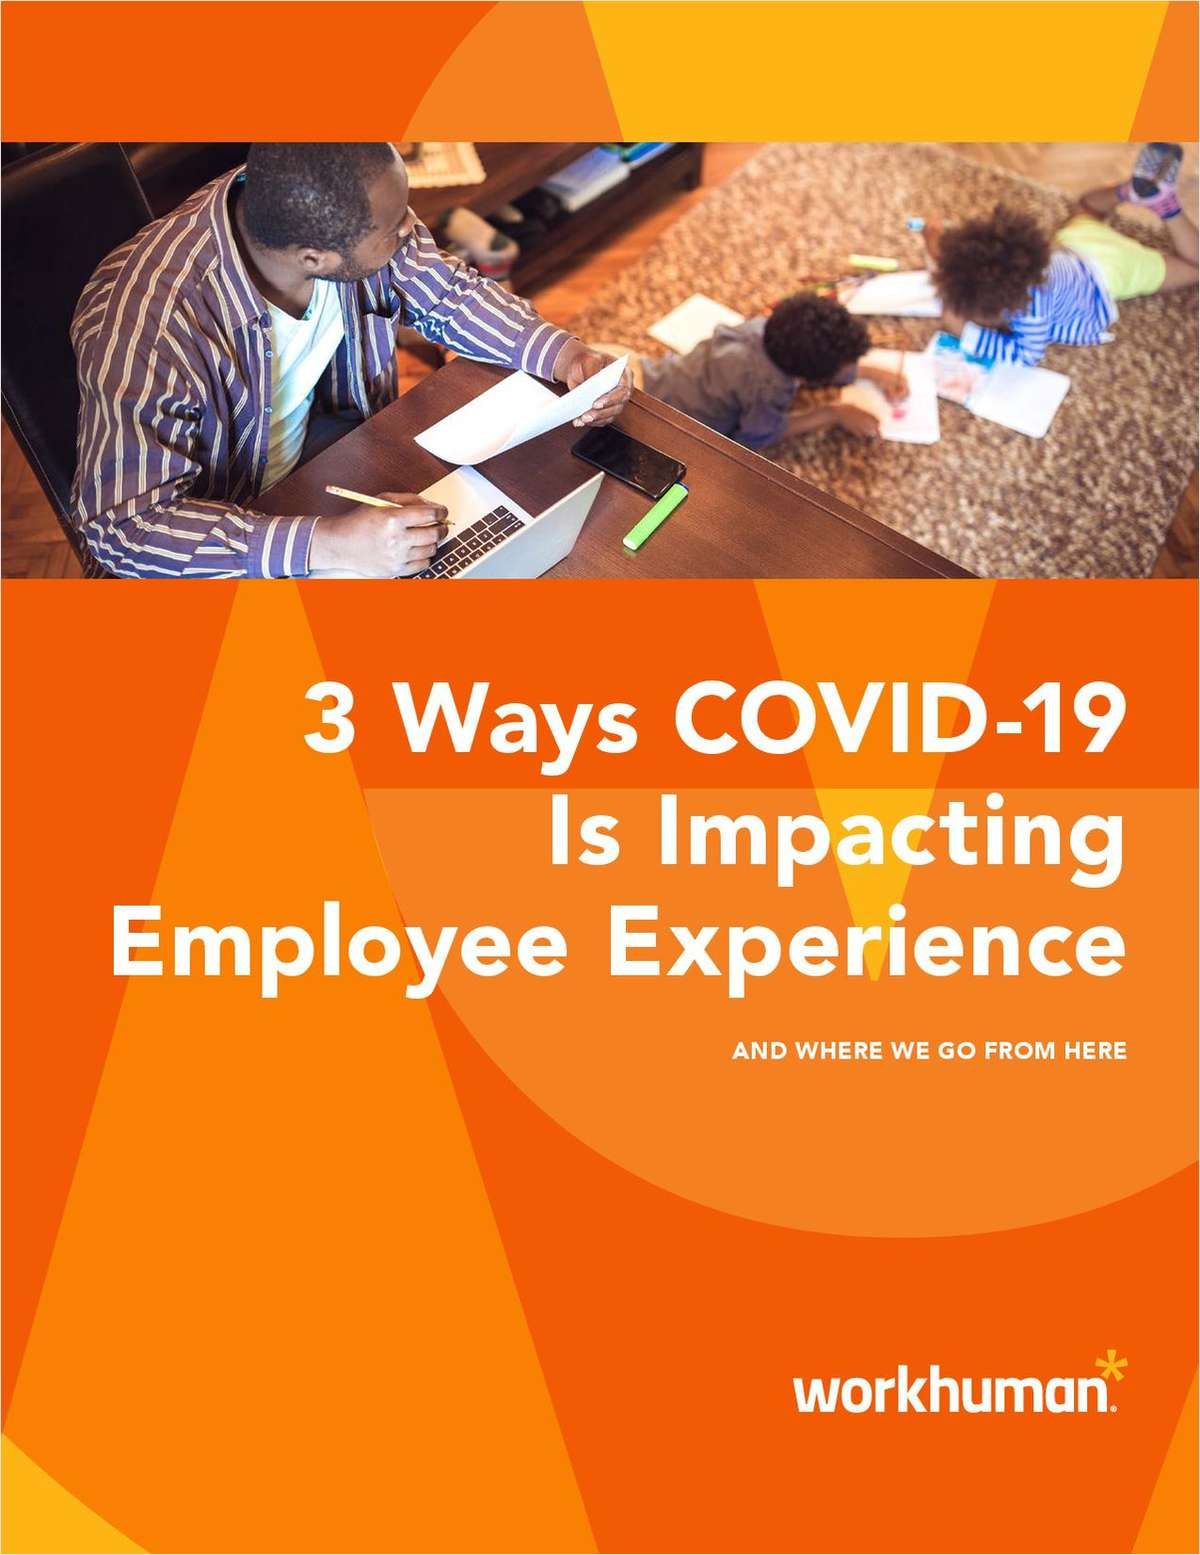 3 Ways COVID-19 Is Impacting Employee Experience